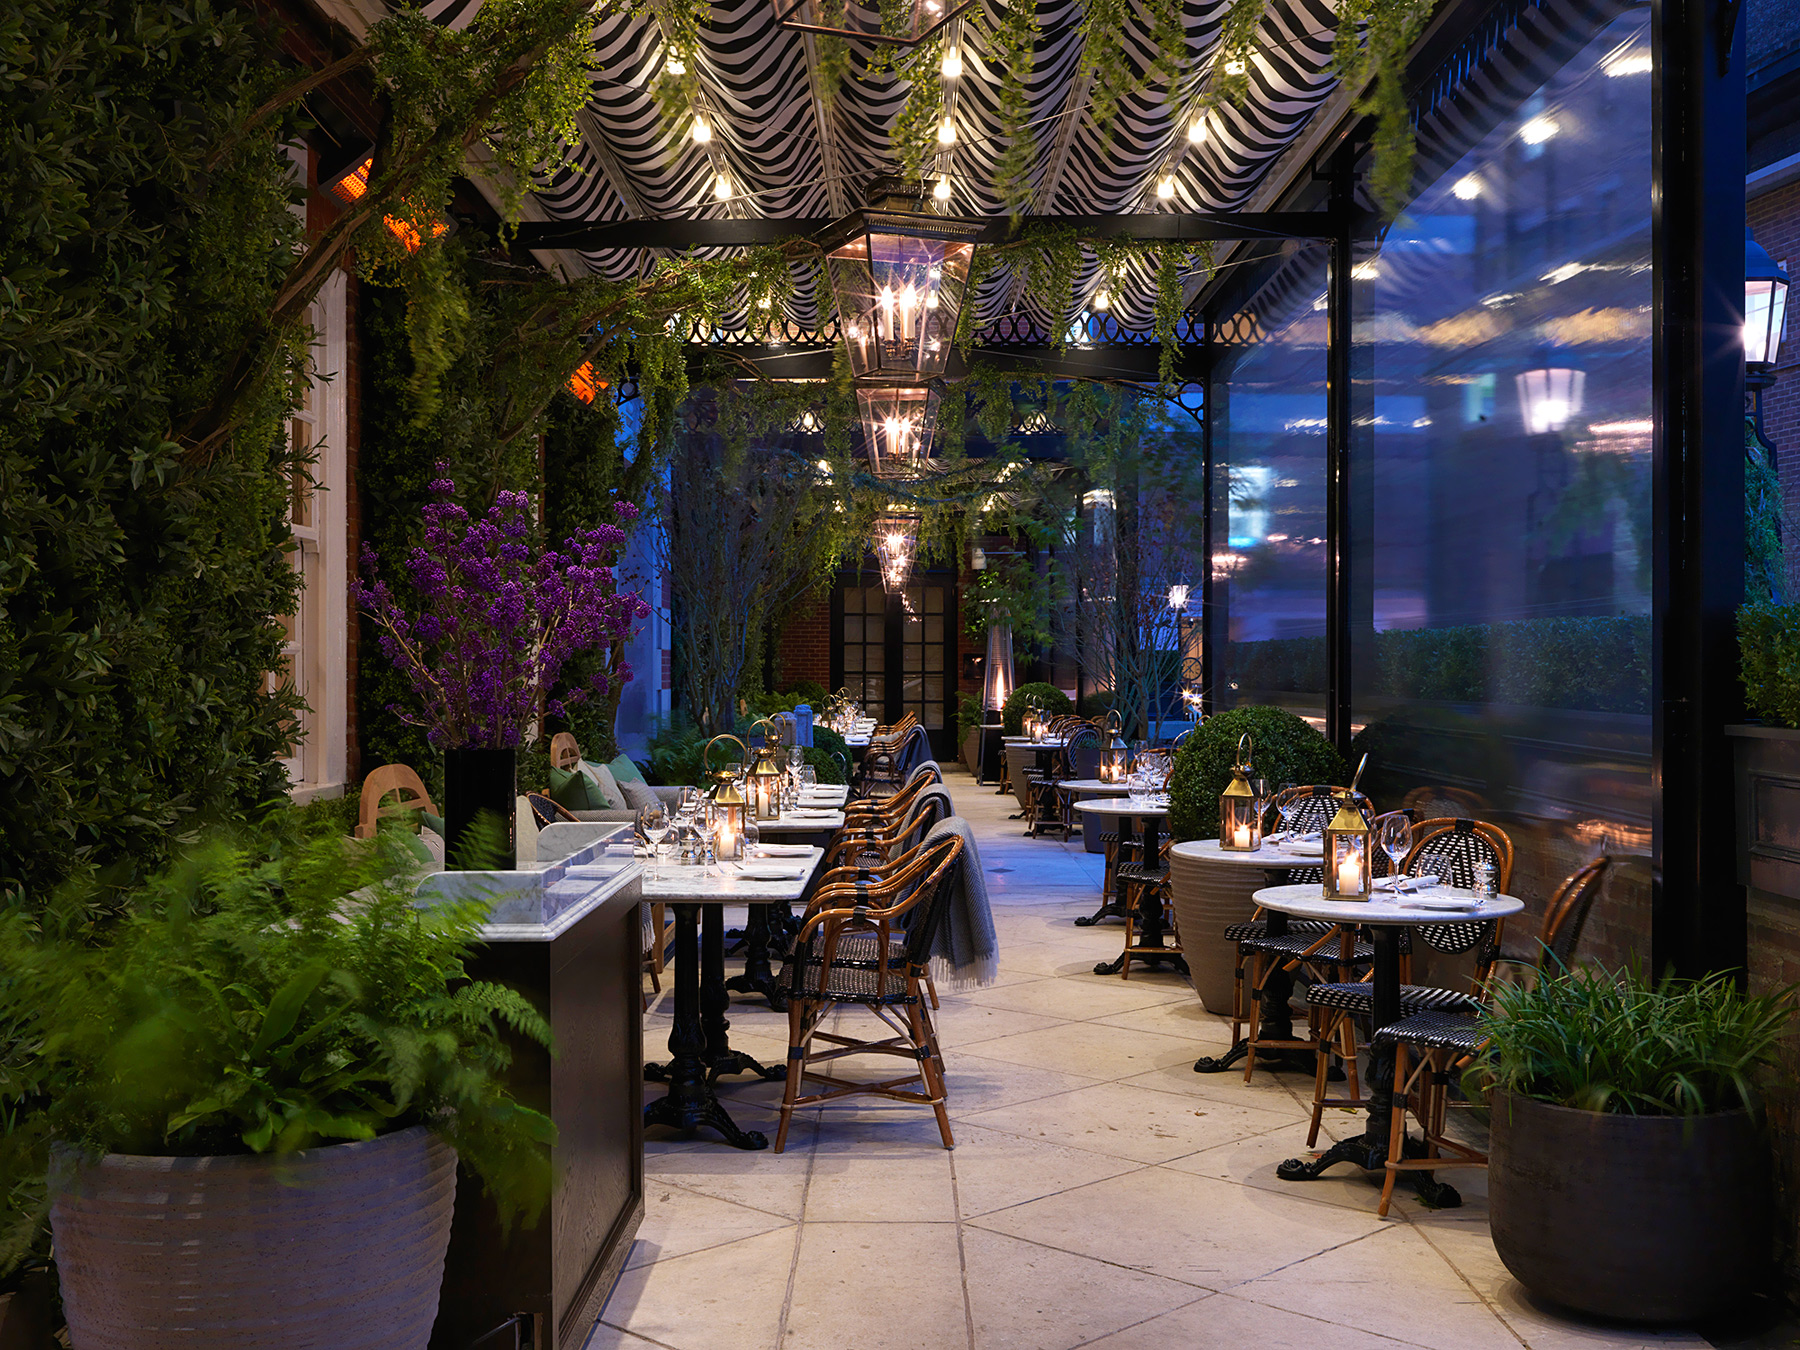 Dalloway terrace at the bloomsbury london for Terrace images